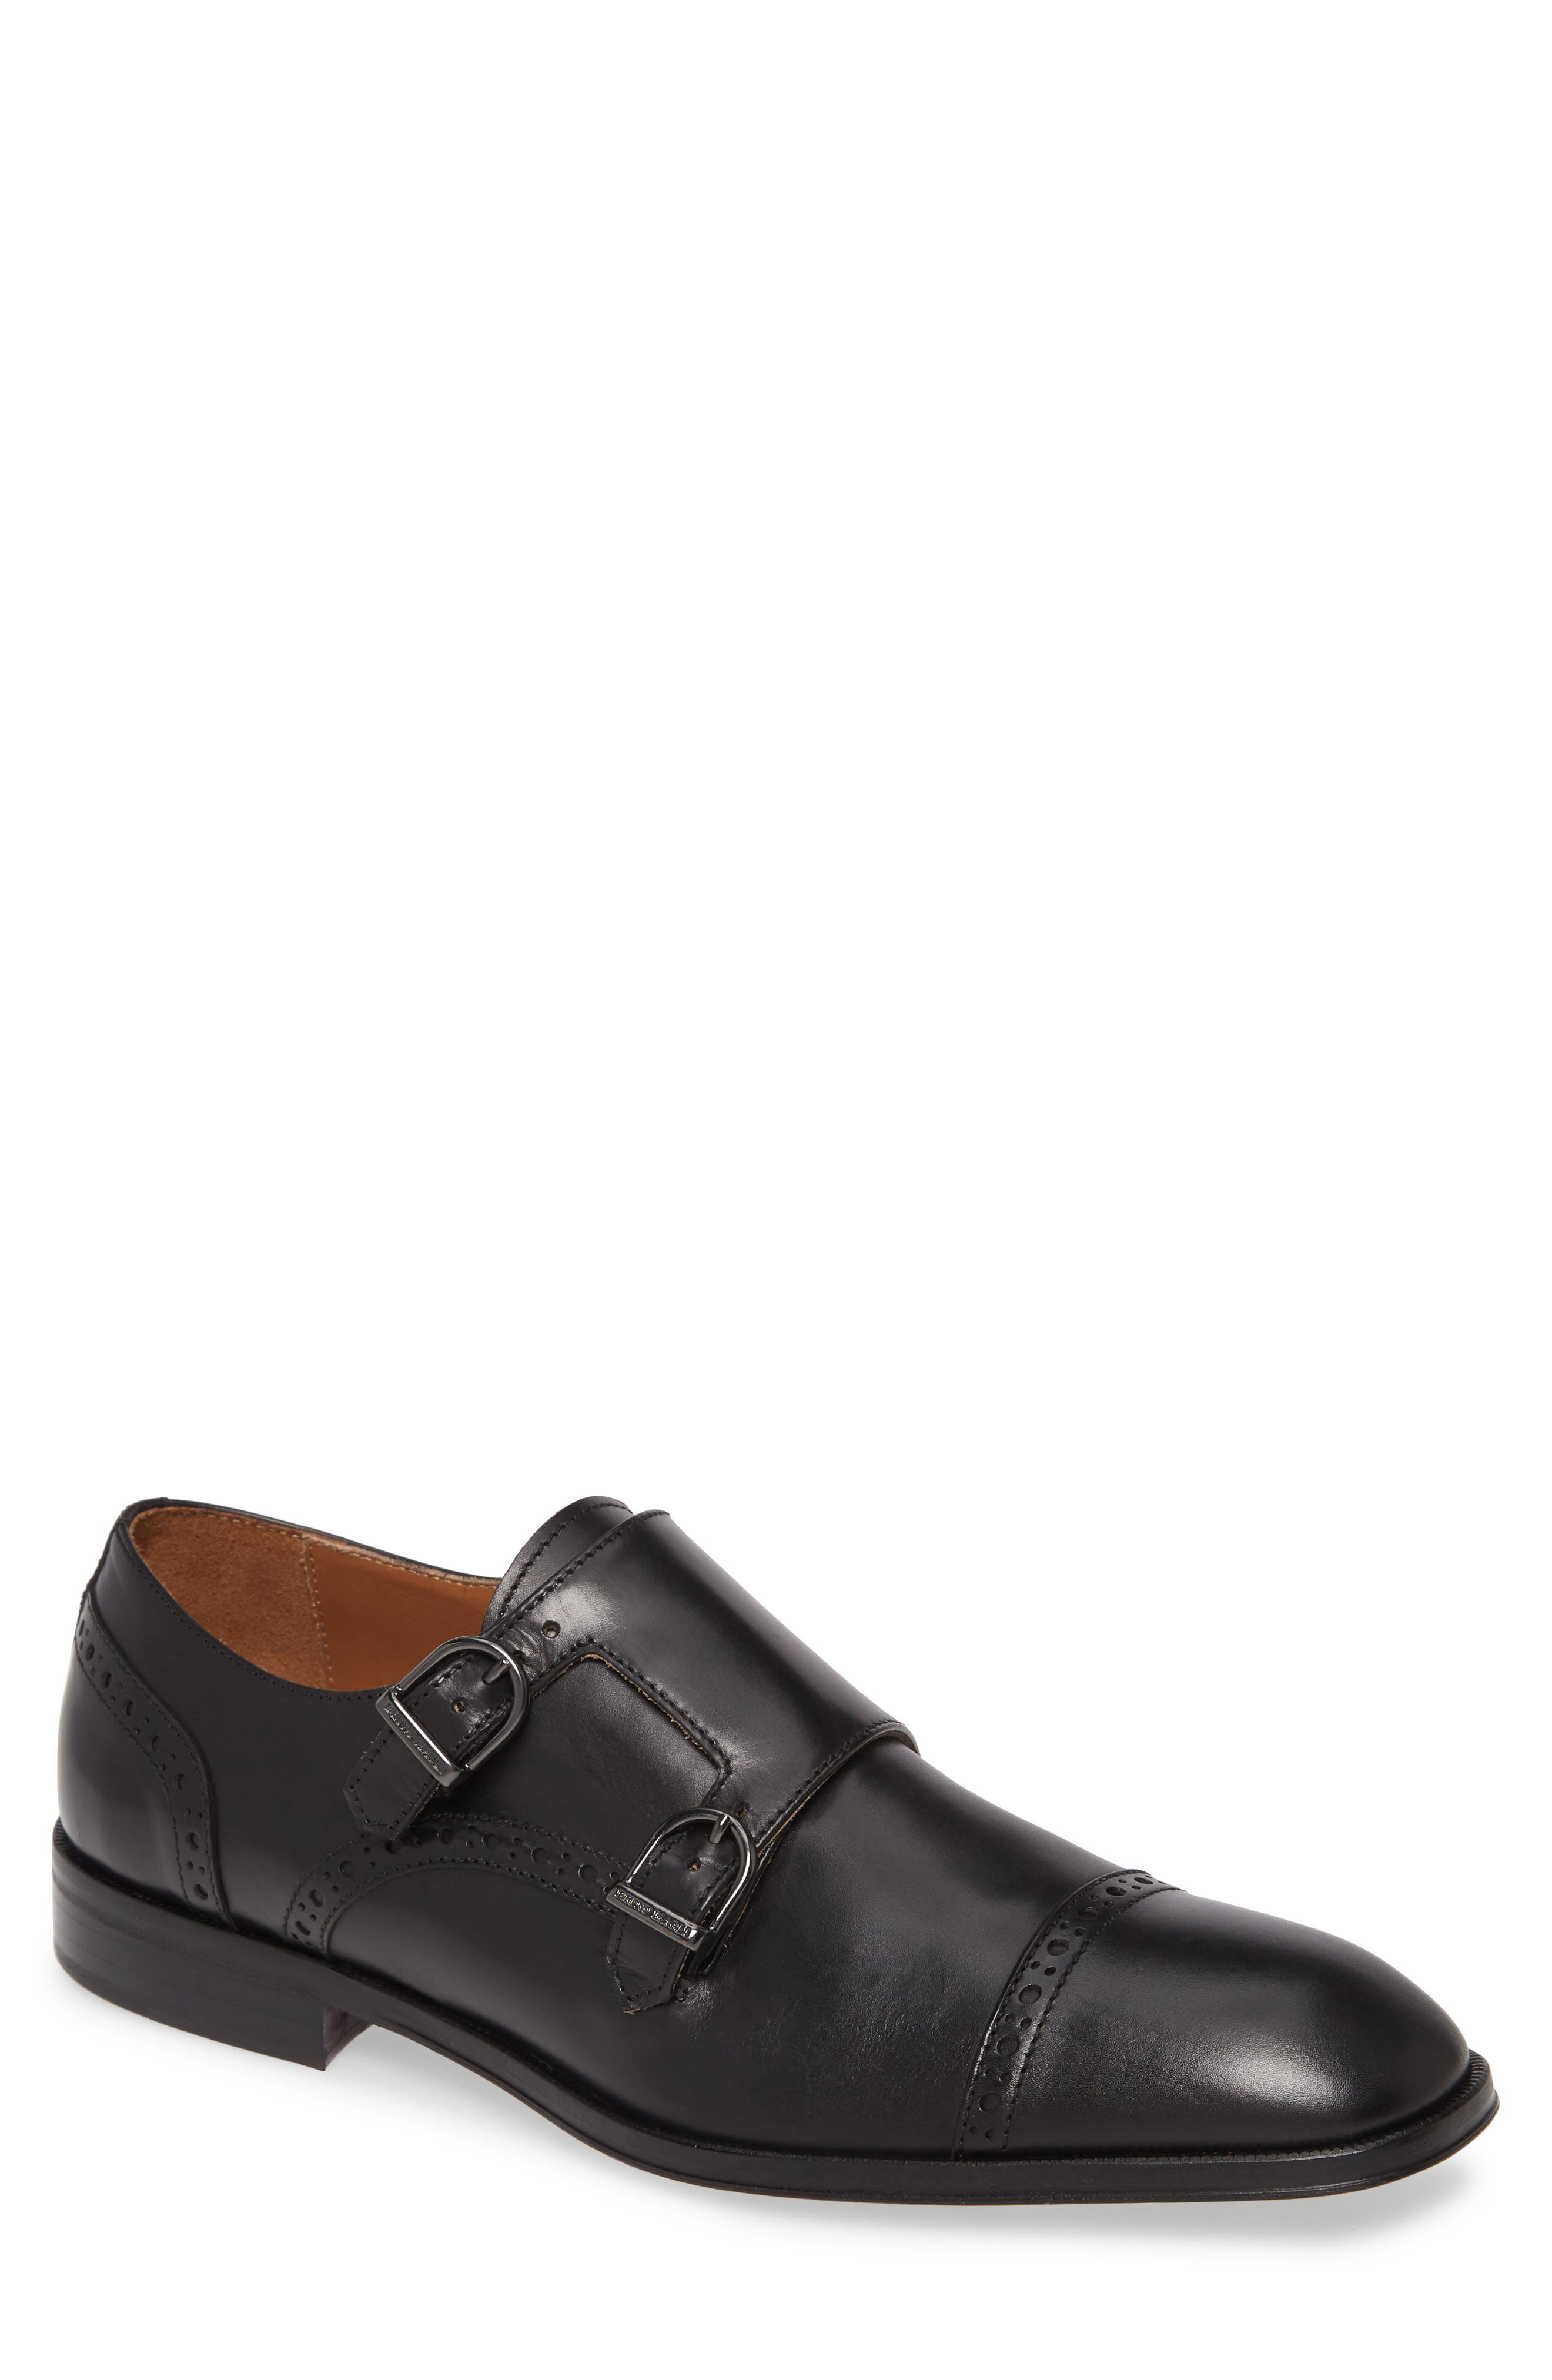 Image of Bruno Magli Ancona Leather Double Monk Strap Loafer